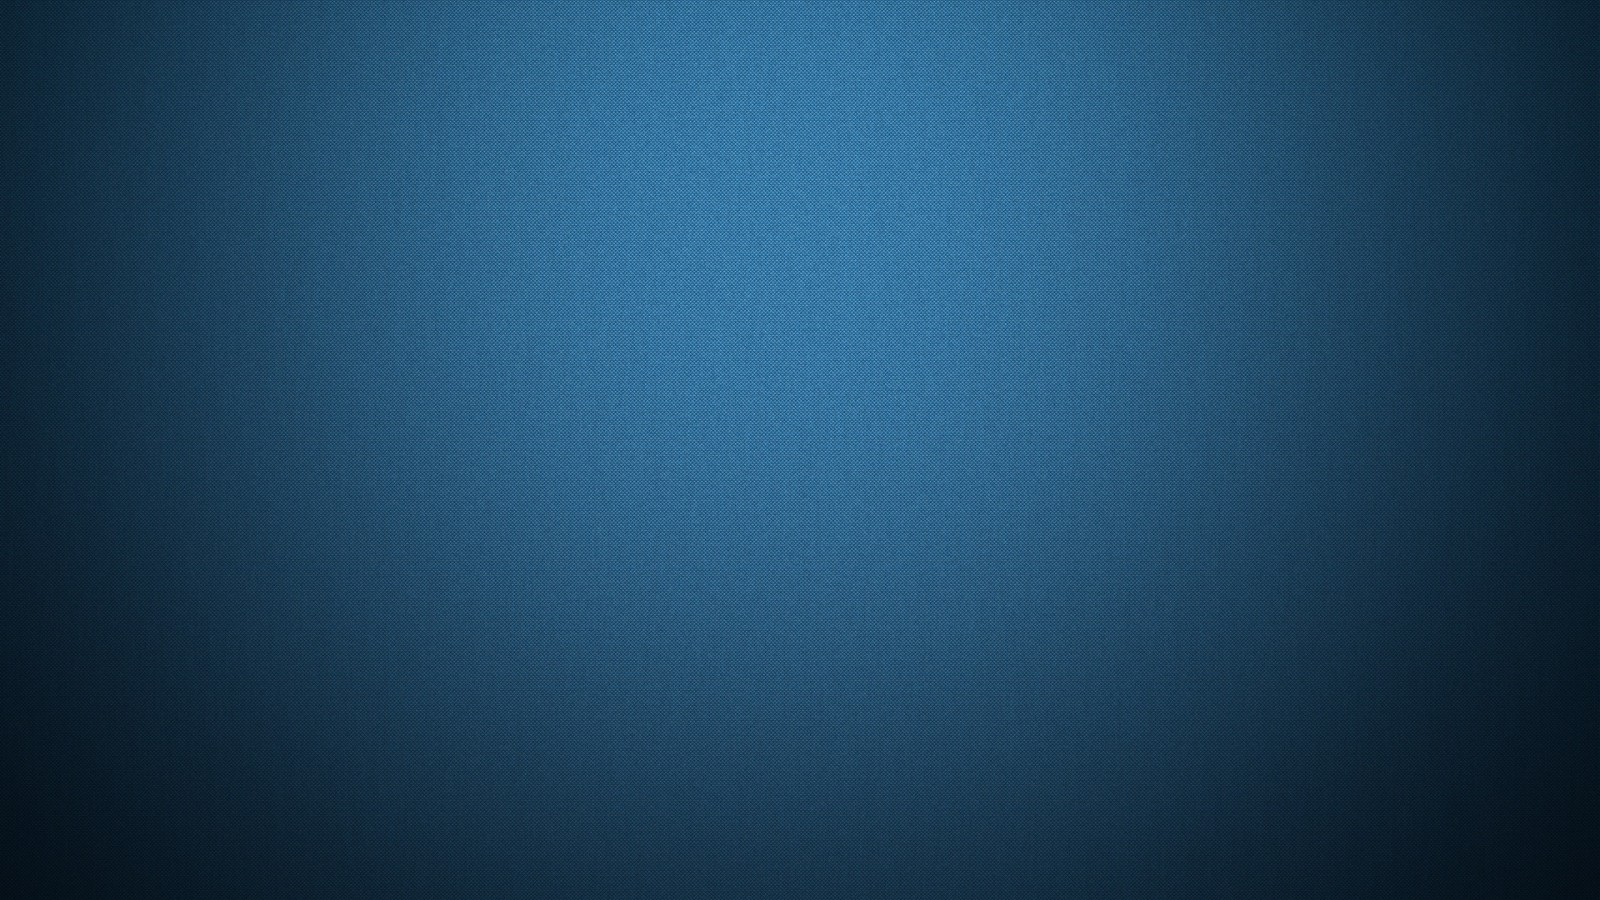 Solid Color Wallpaper Blue Background Solid Colors Best HD Wallpapers 1600x900